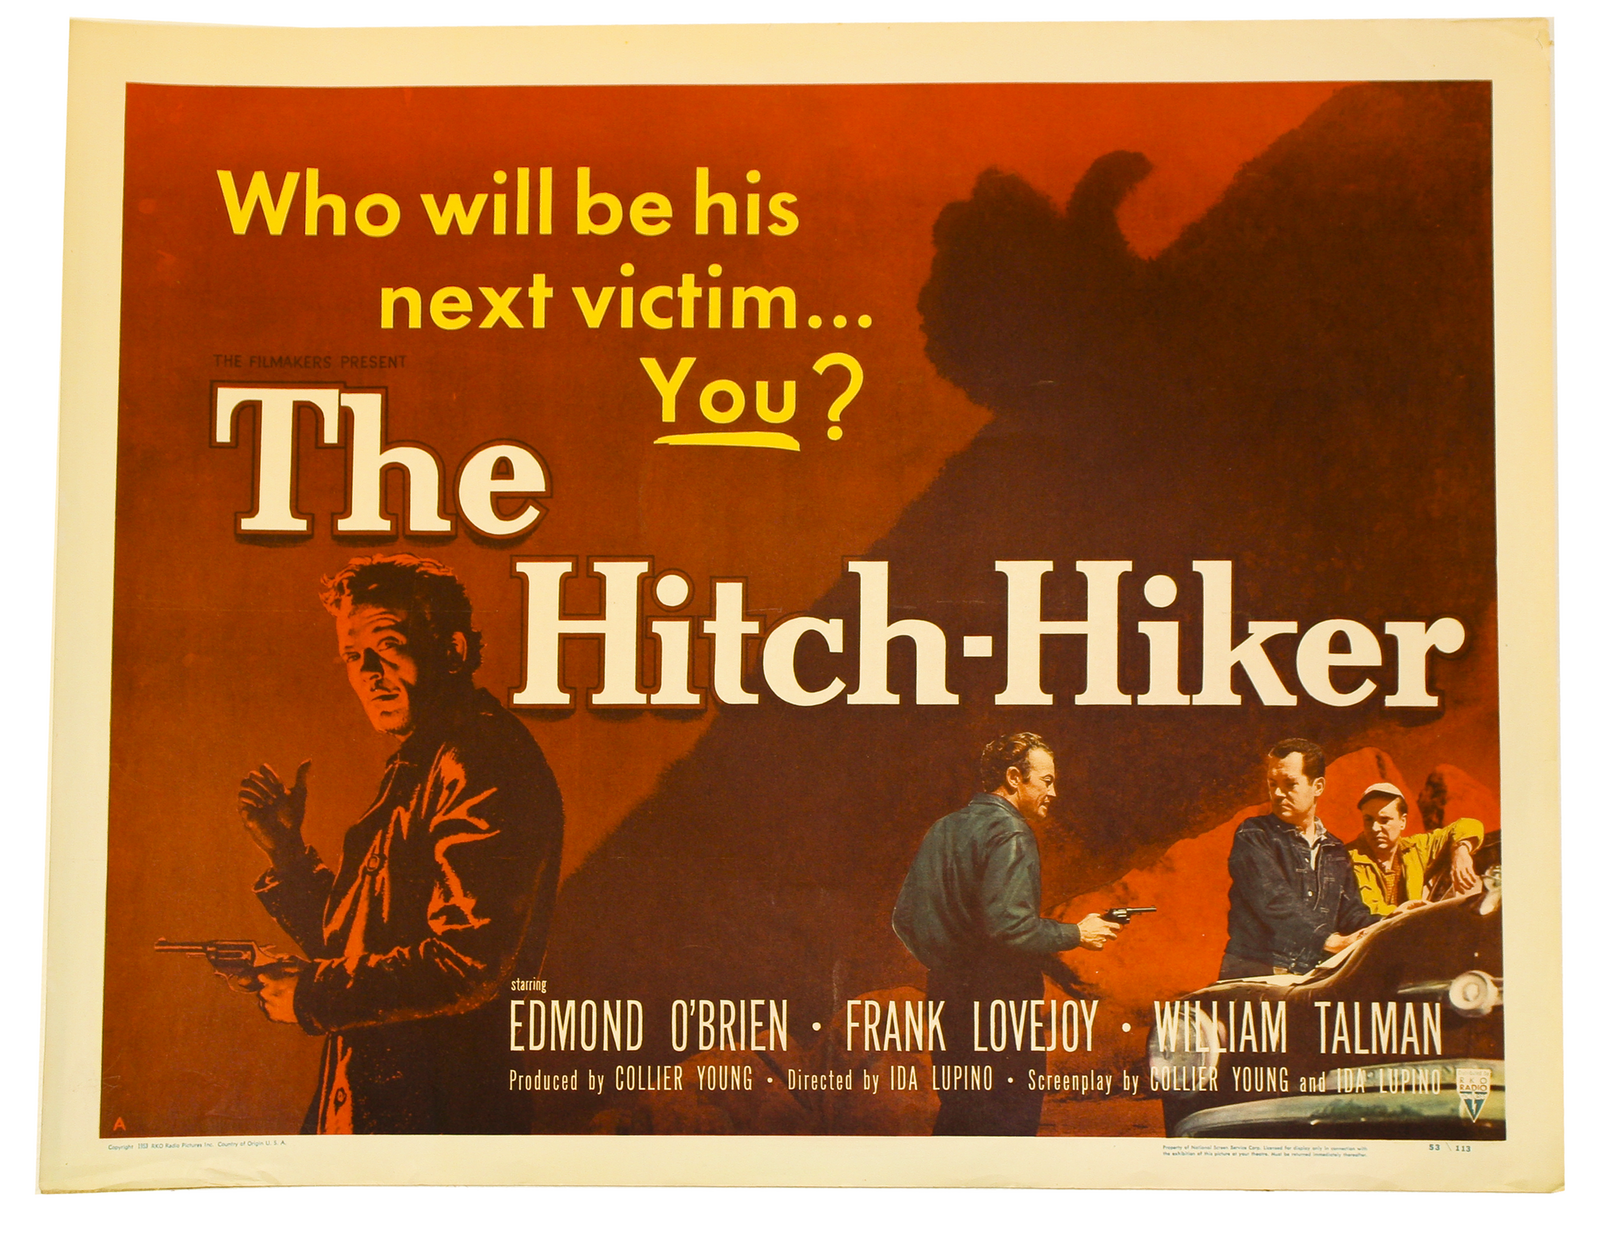 Hitchhiker_WB.png